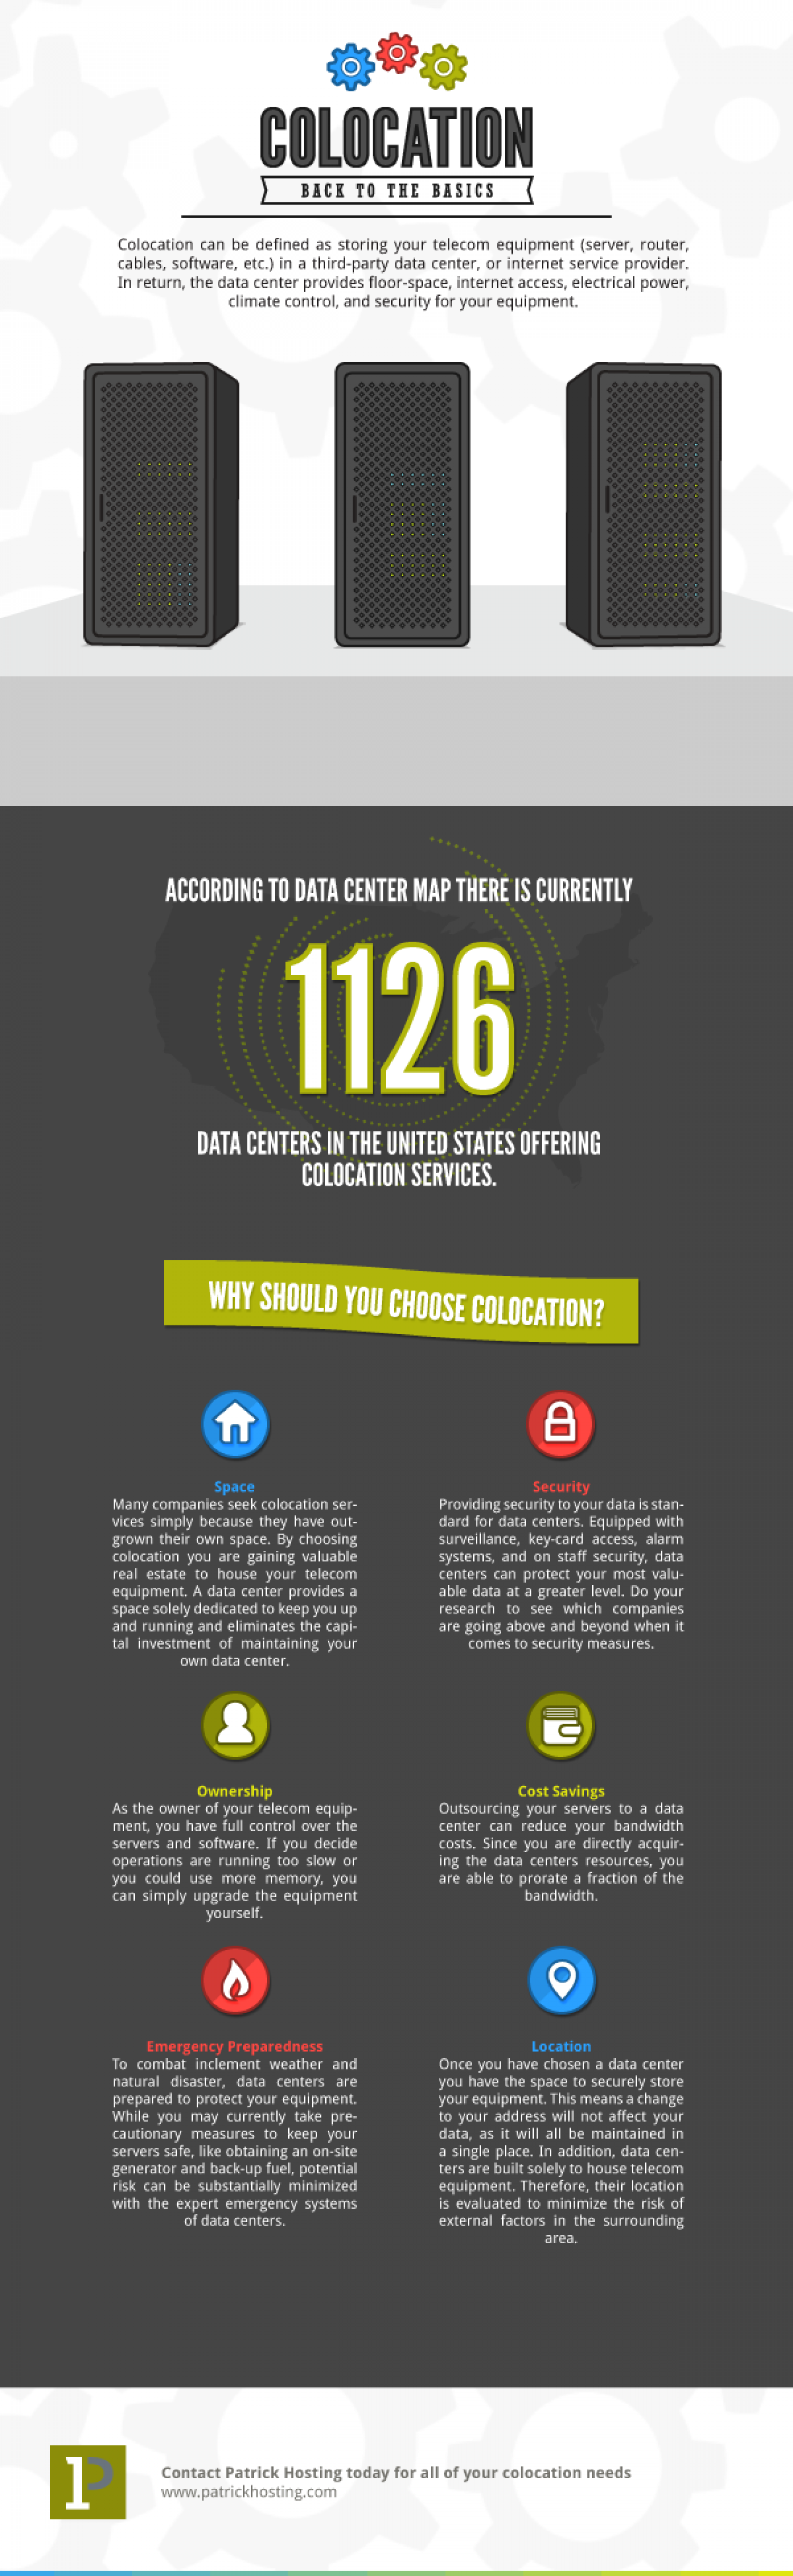 Colocation: Back to the Basics Infographic